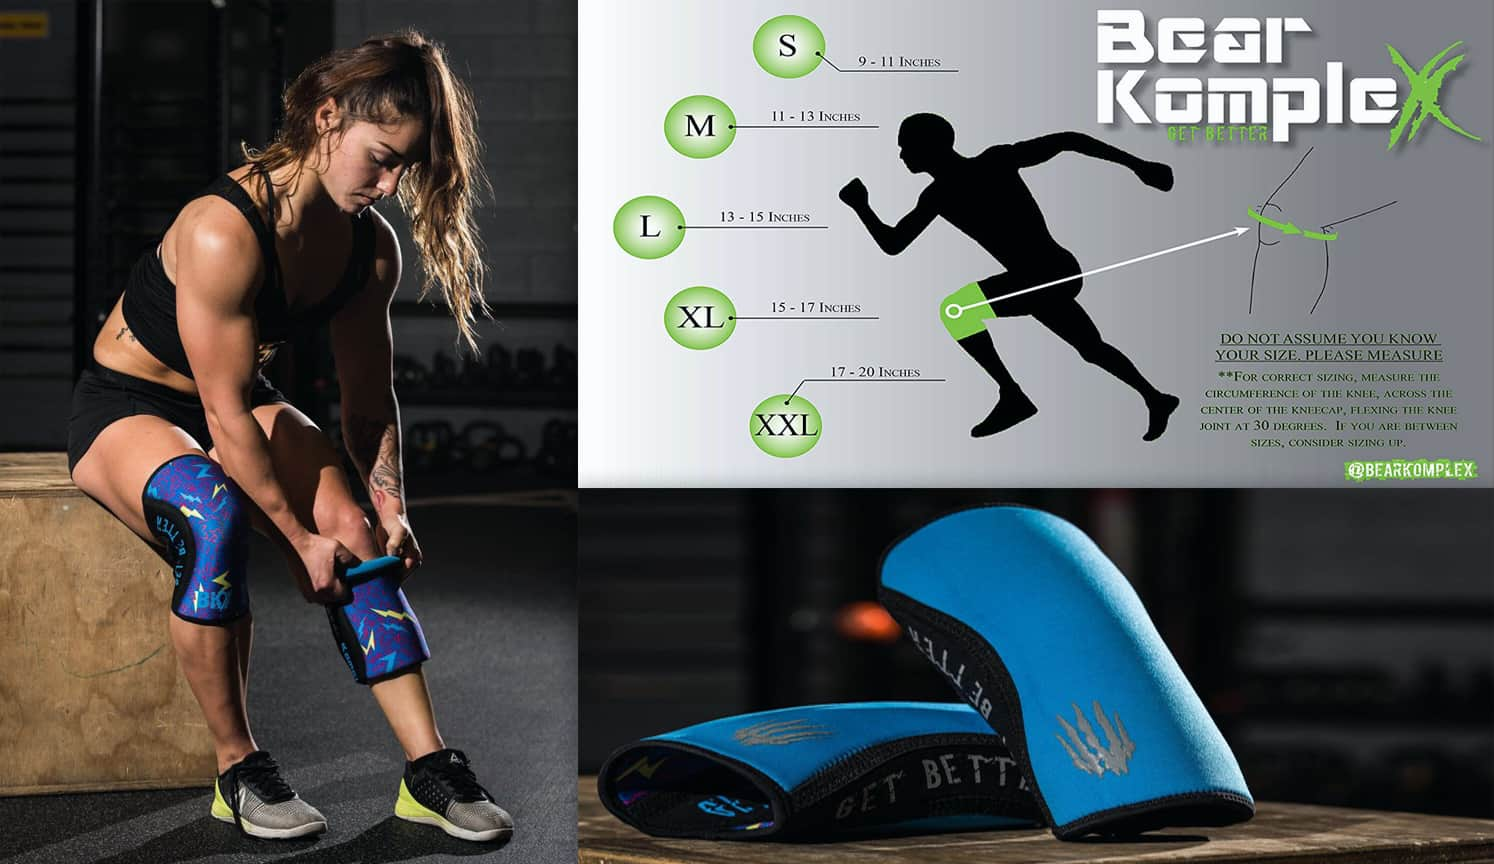 Best Knee Sleeves as the first related product of the Best Knee Brace